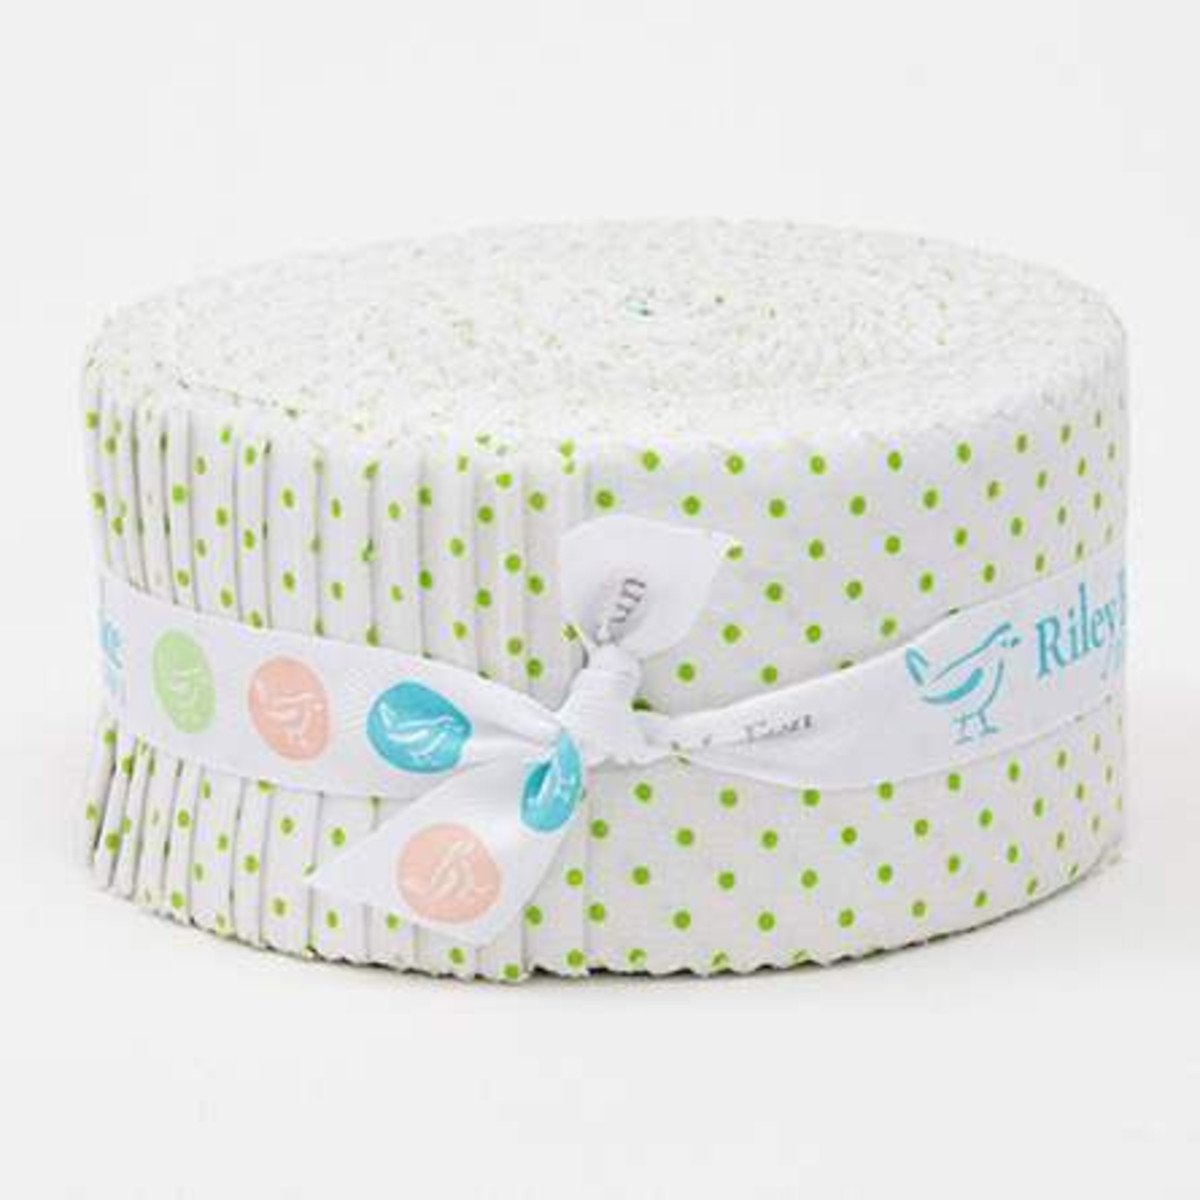 Swiss Dot On White Color Lime 2-1/2in Rolie Polie 40 Pcs